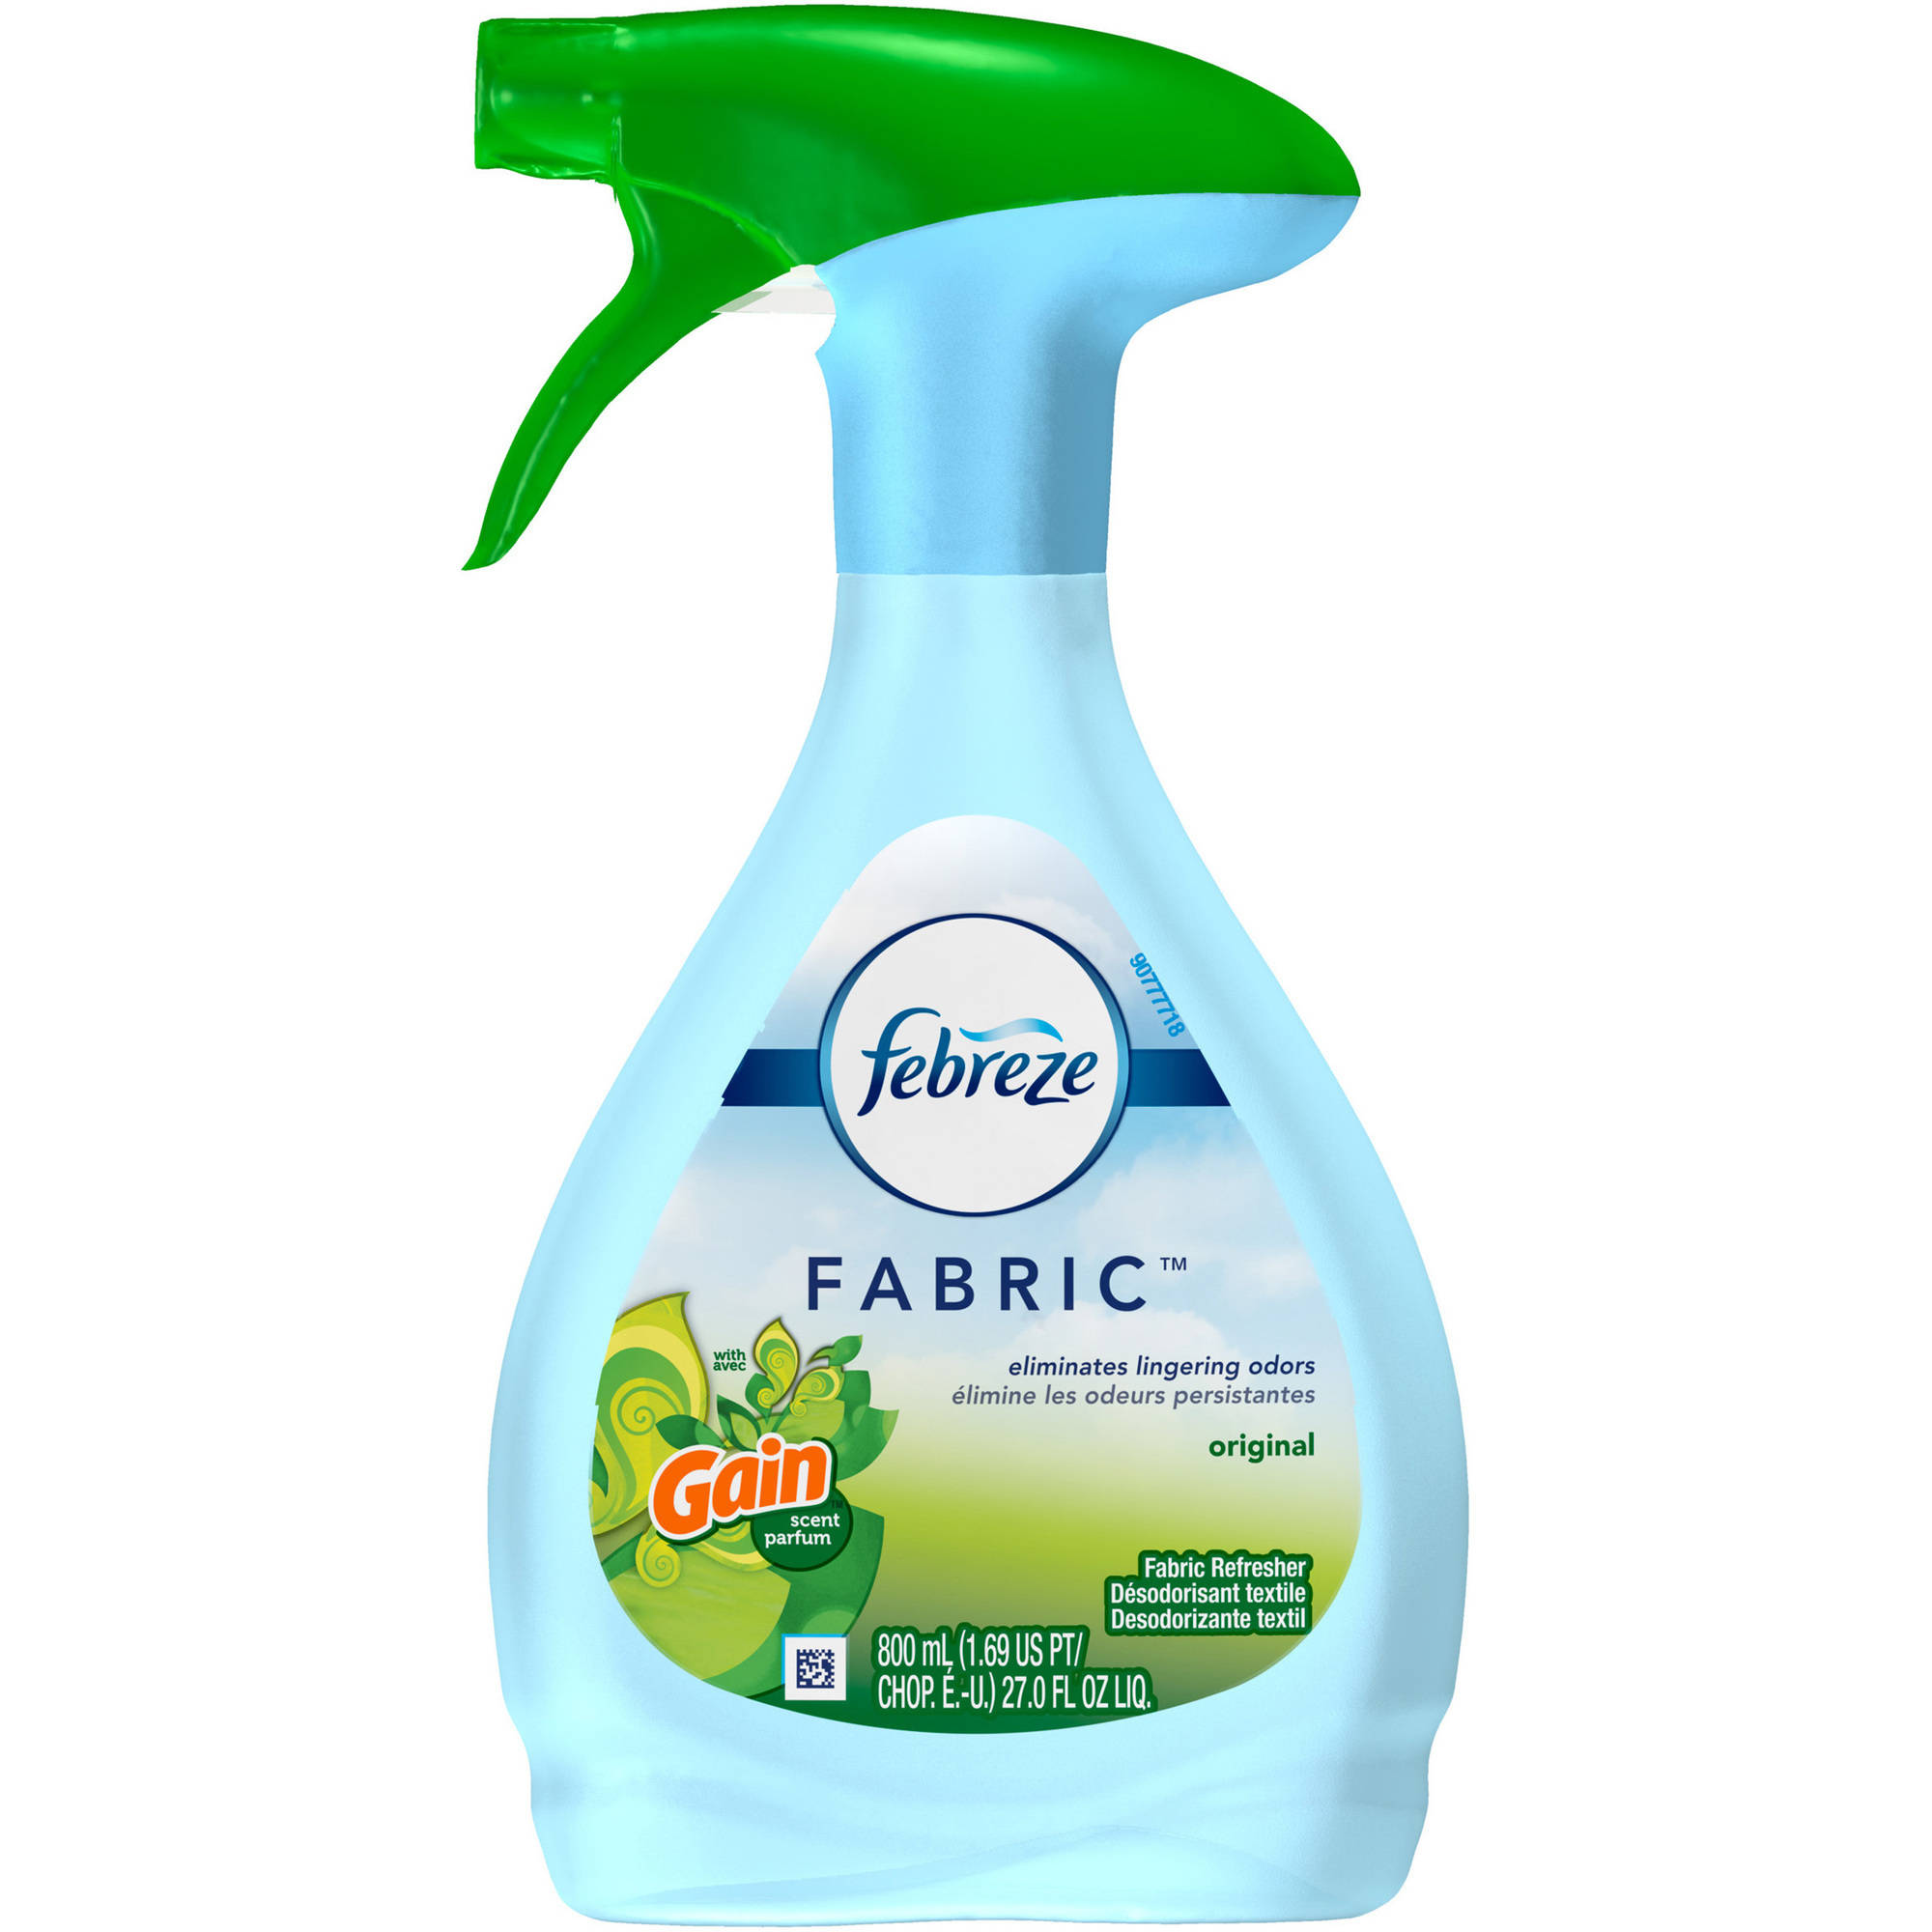 Febreze Gain Original Fresh Scent Fabric Refresher, 27 oz